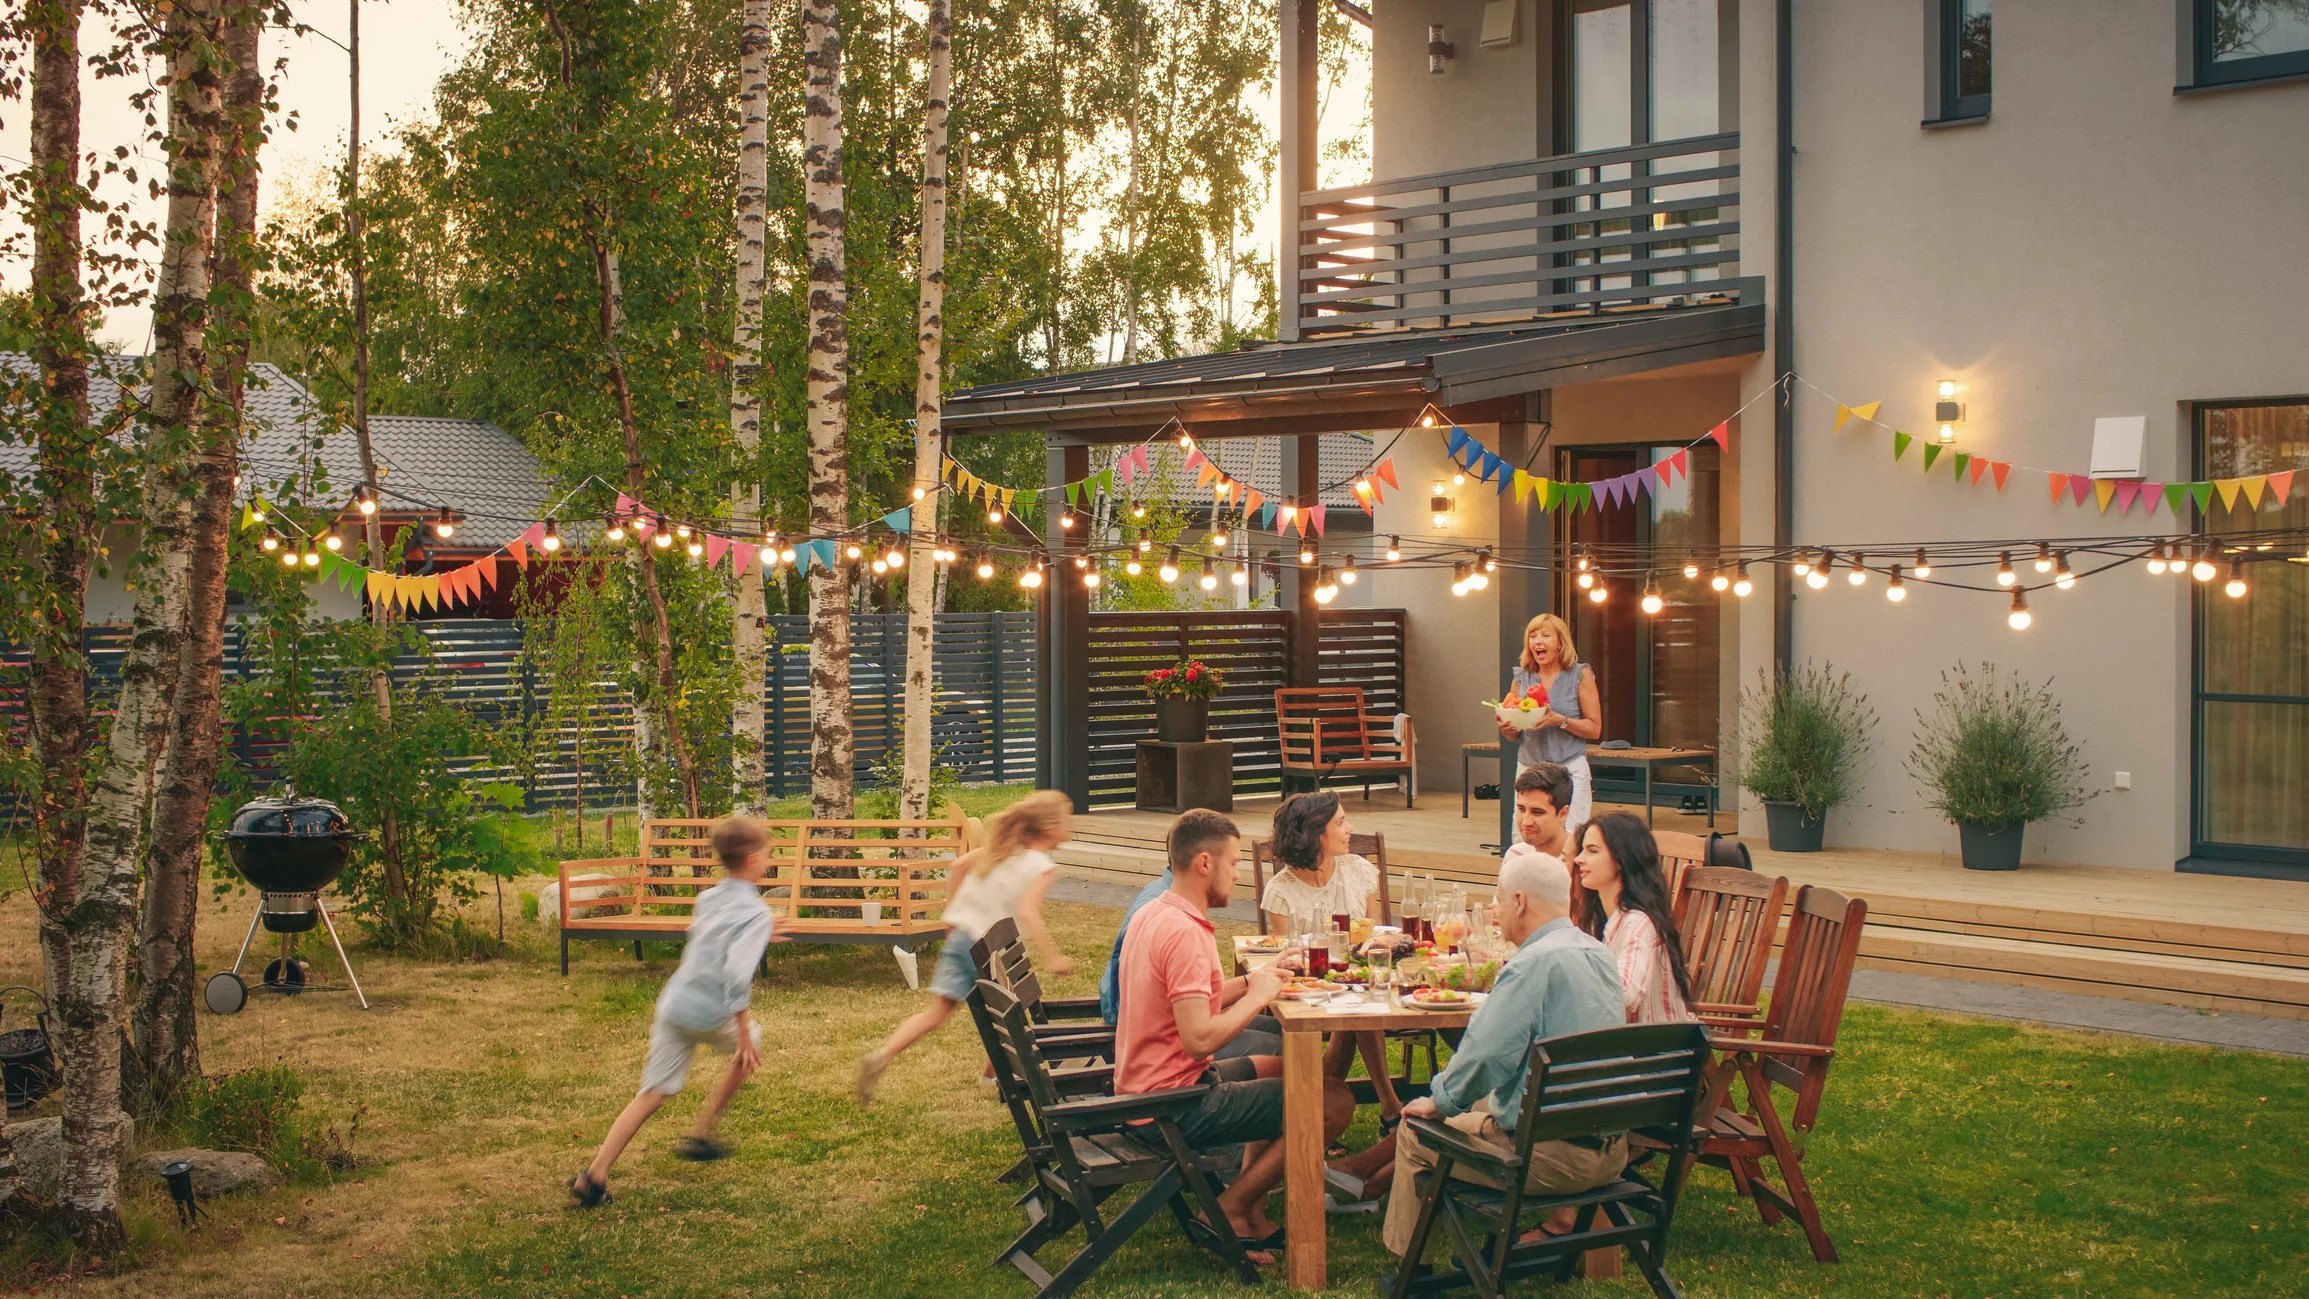 backyard ideas to make the most of your